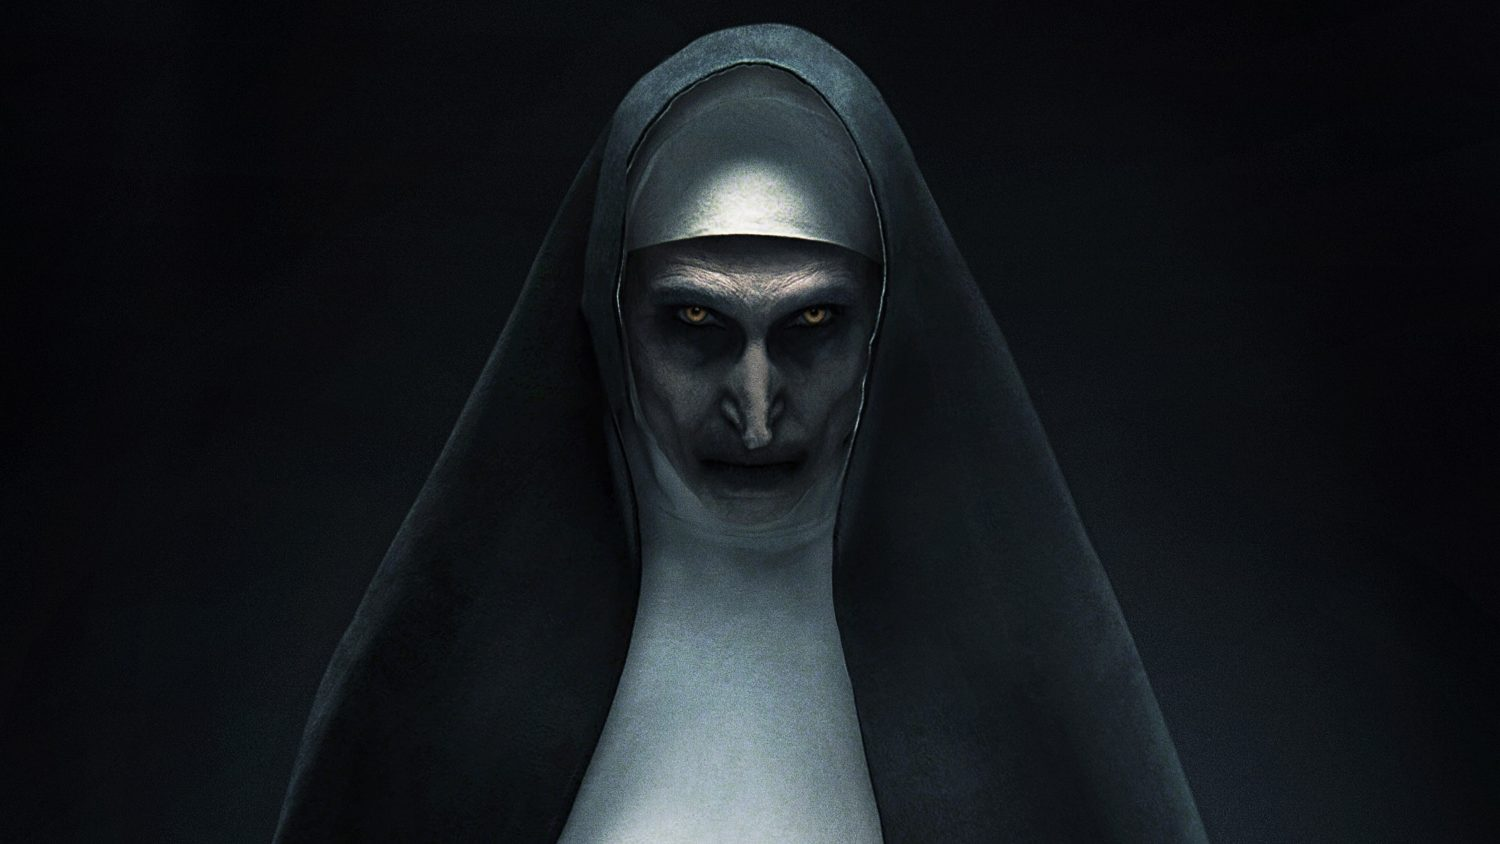 Crítica: A Freira (The Nun, EUA, 2018)